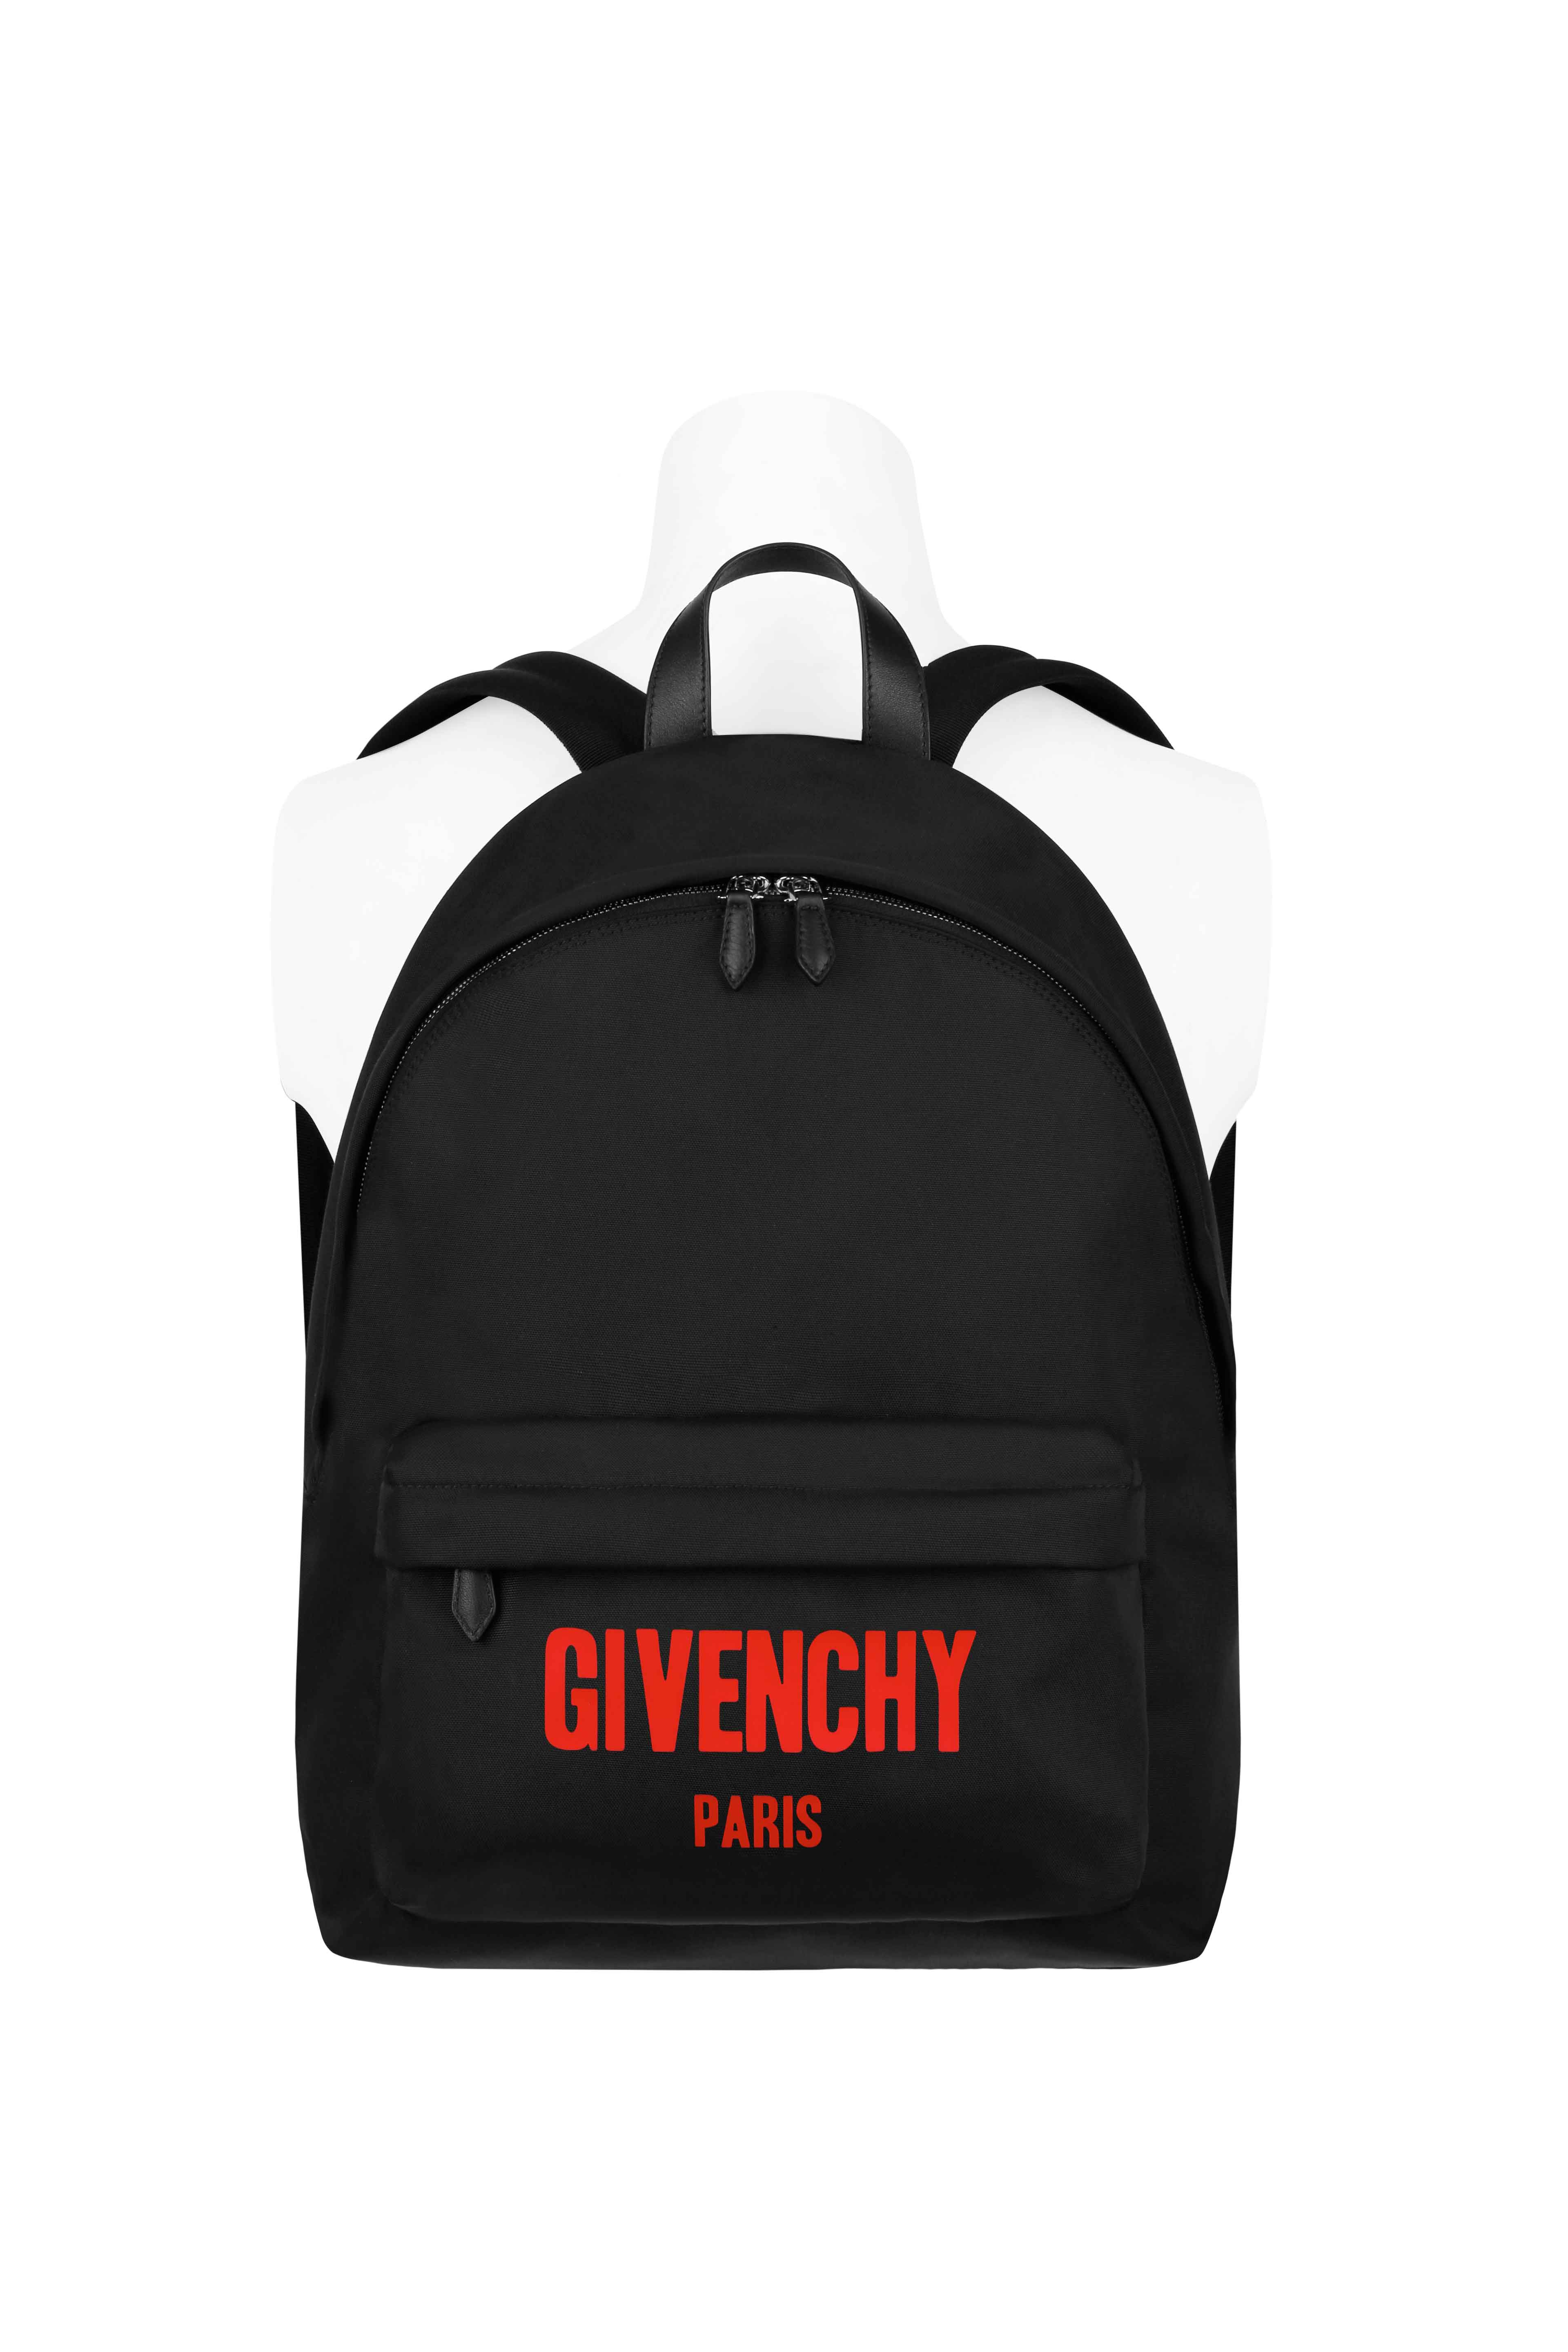 Givenchy, 伊勢丹